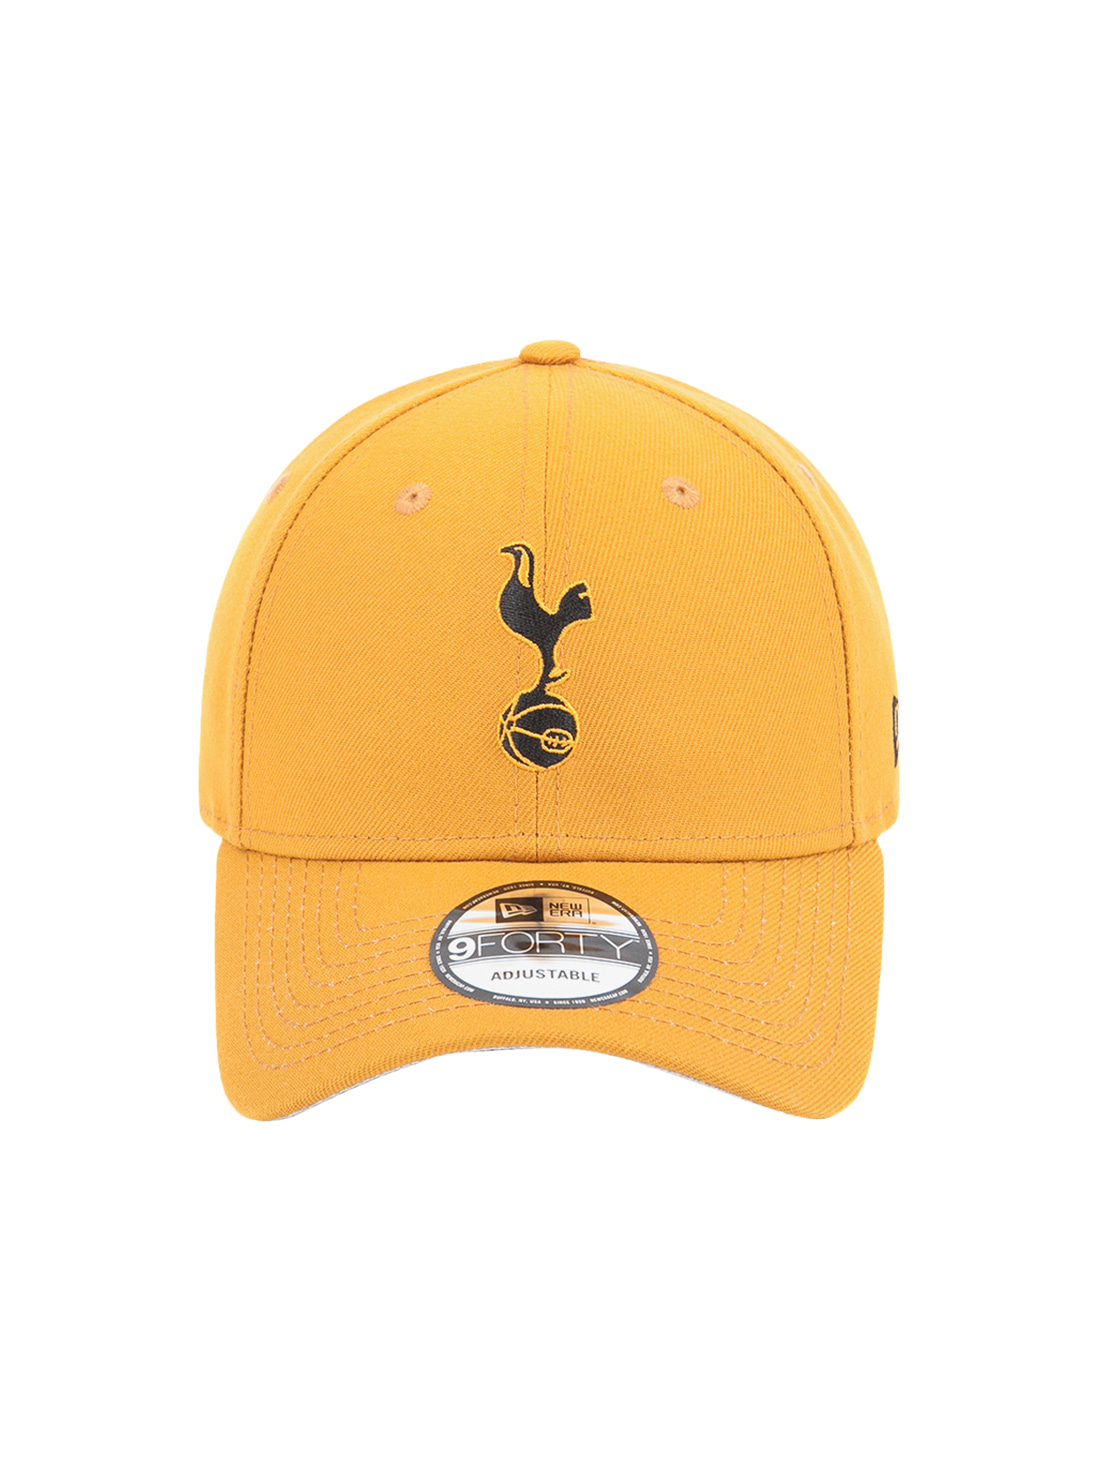 GOALSTUDIO TOTTENHAM 940 BALL CAP - GOLD